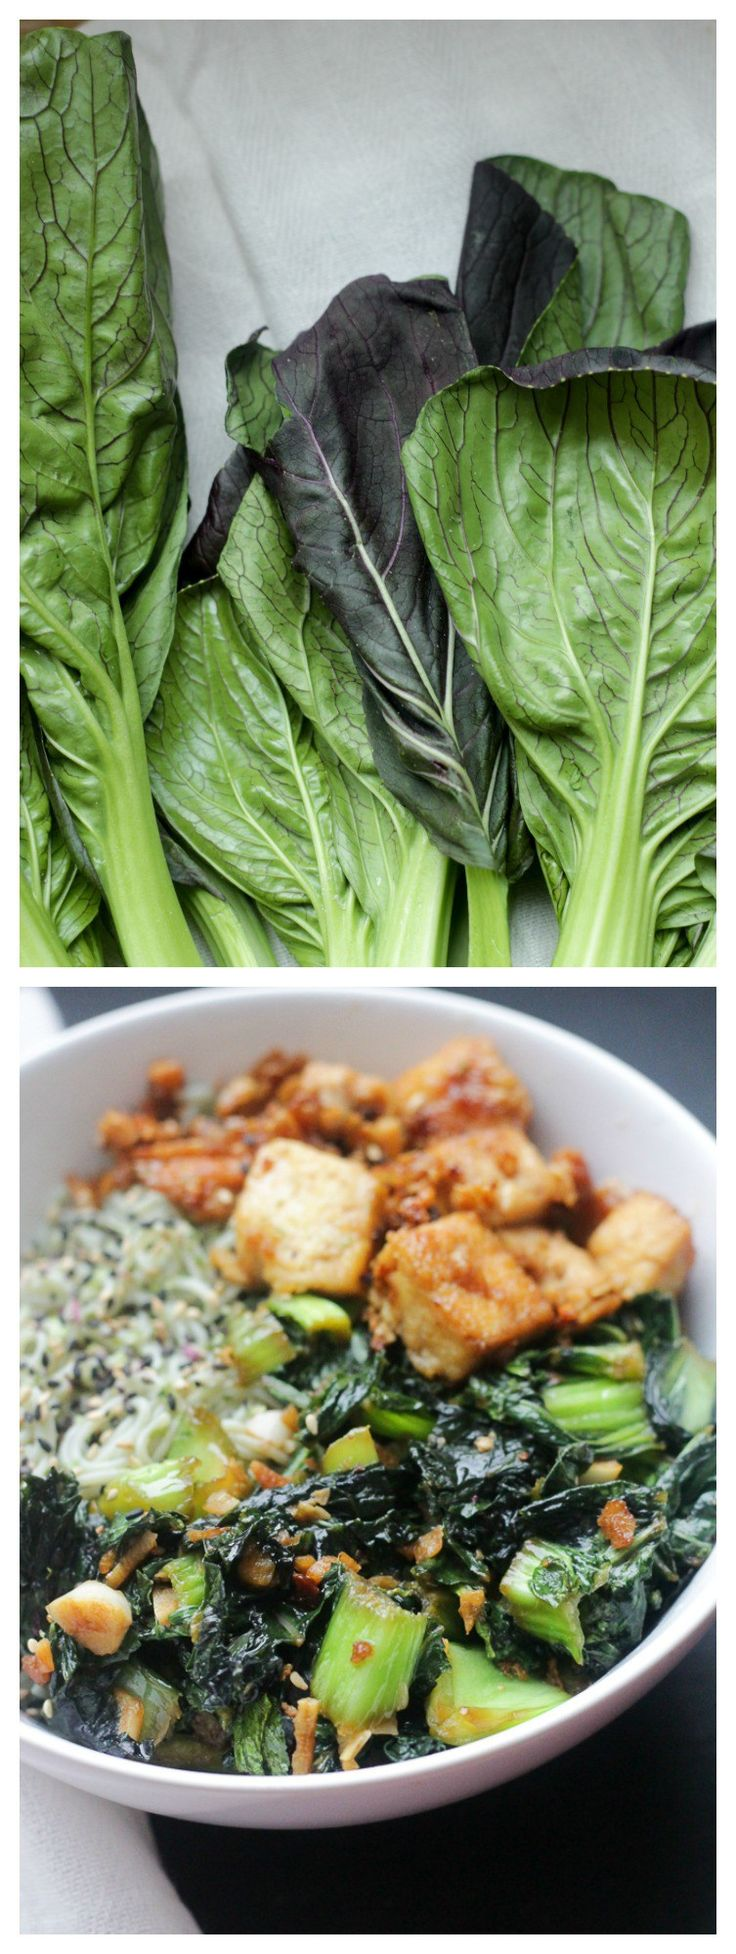 Vegan Maple Glazed Tofu, Bok Choy & Ramen Noodle Bowl // apolloandluna.com